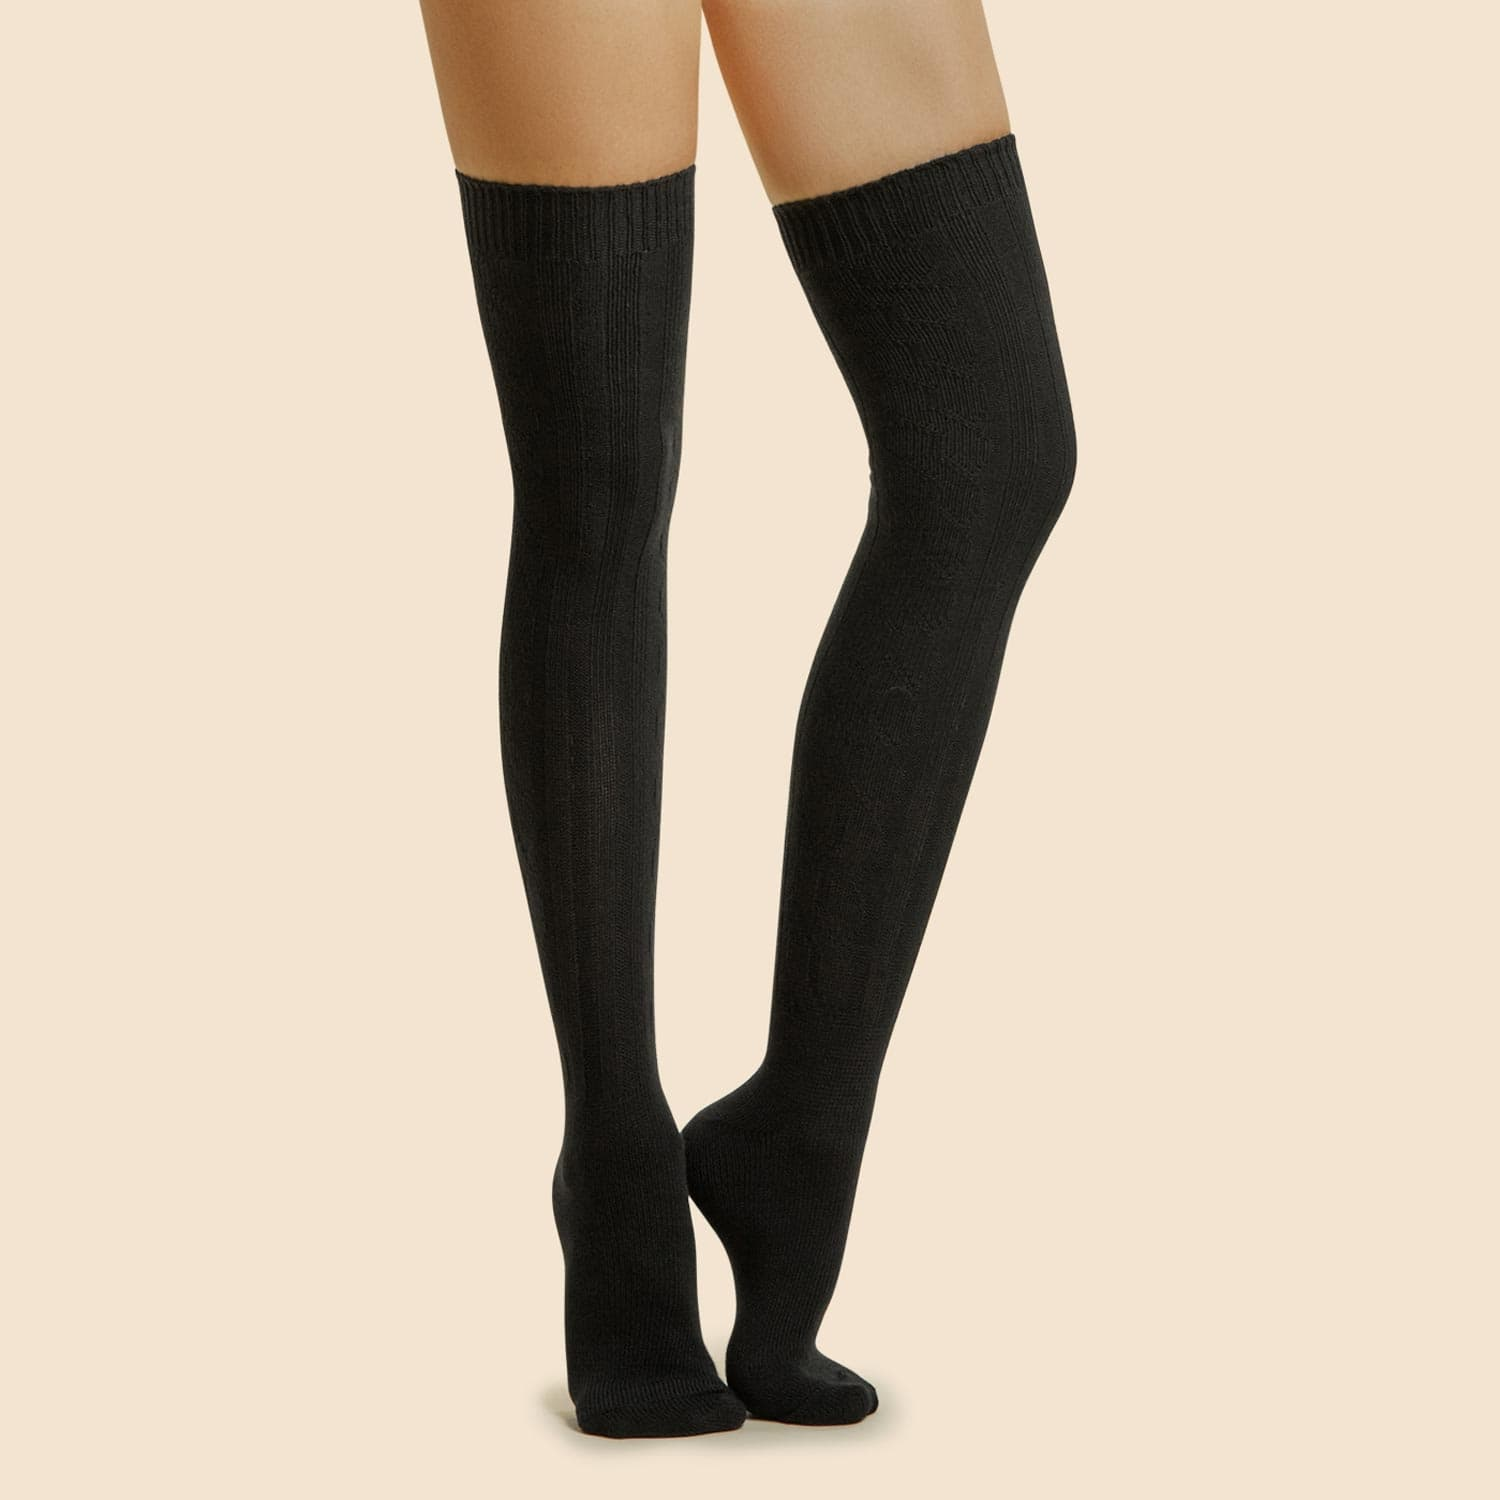 3 Pairs Women's Cable Over The Knees Socks - $11 + Free Shipping